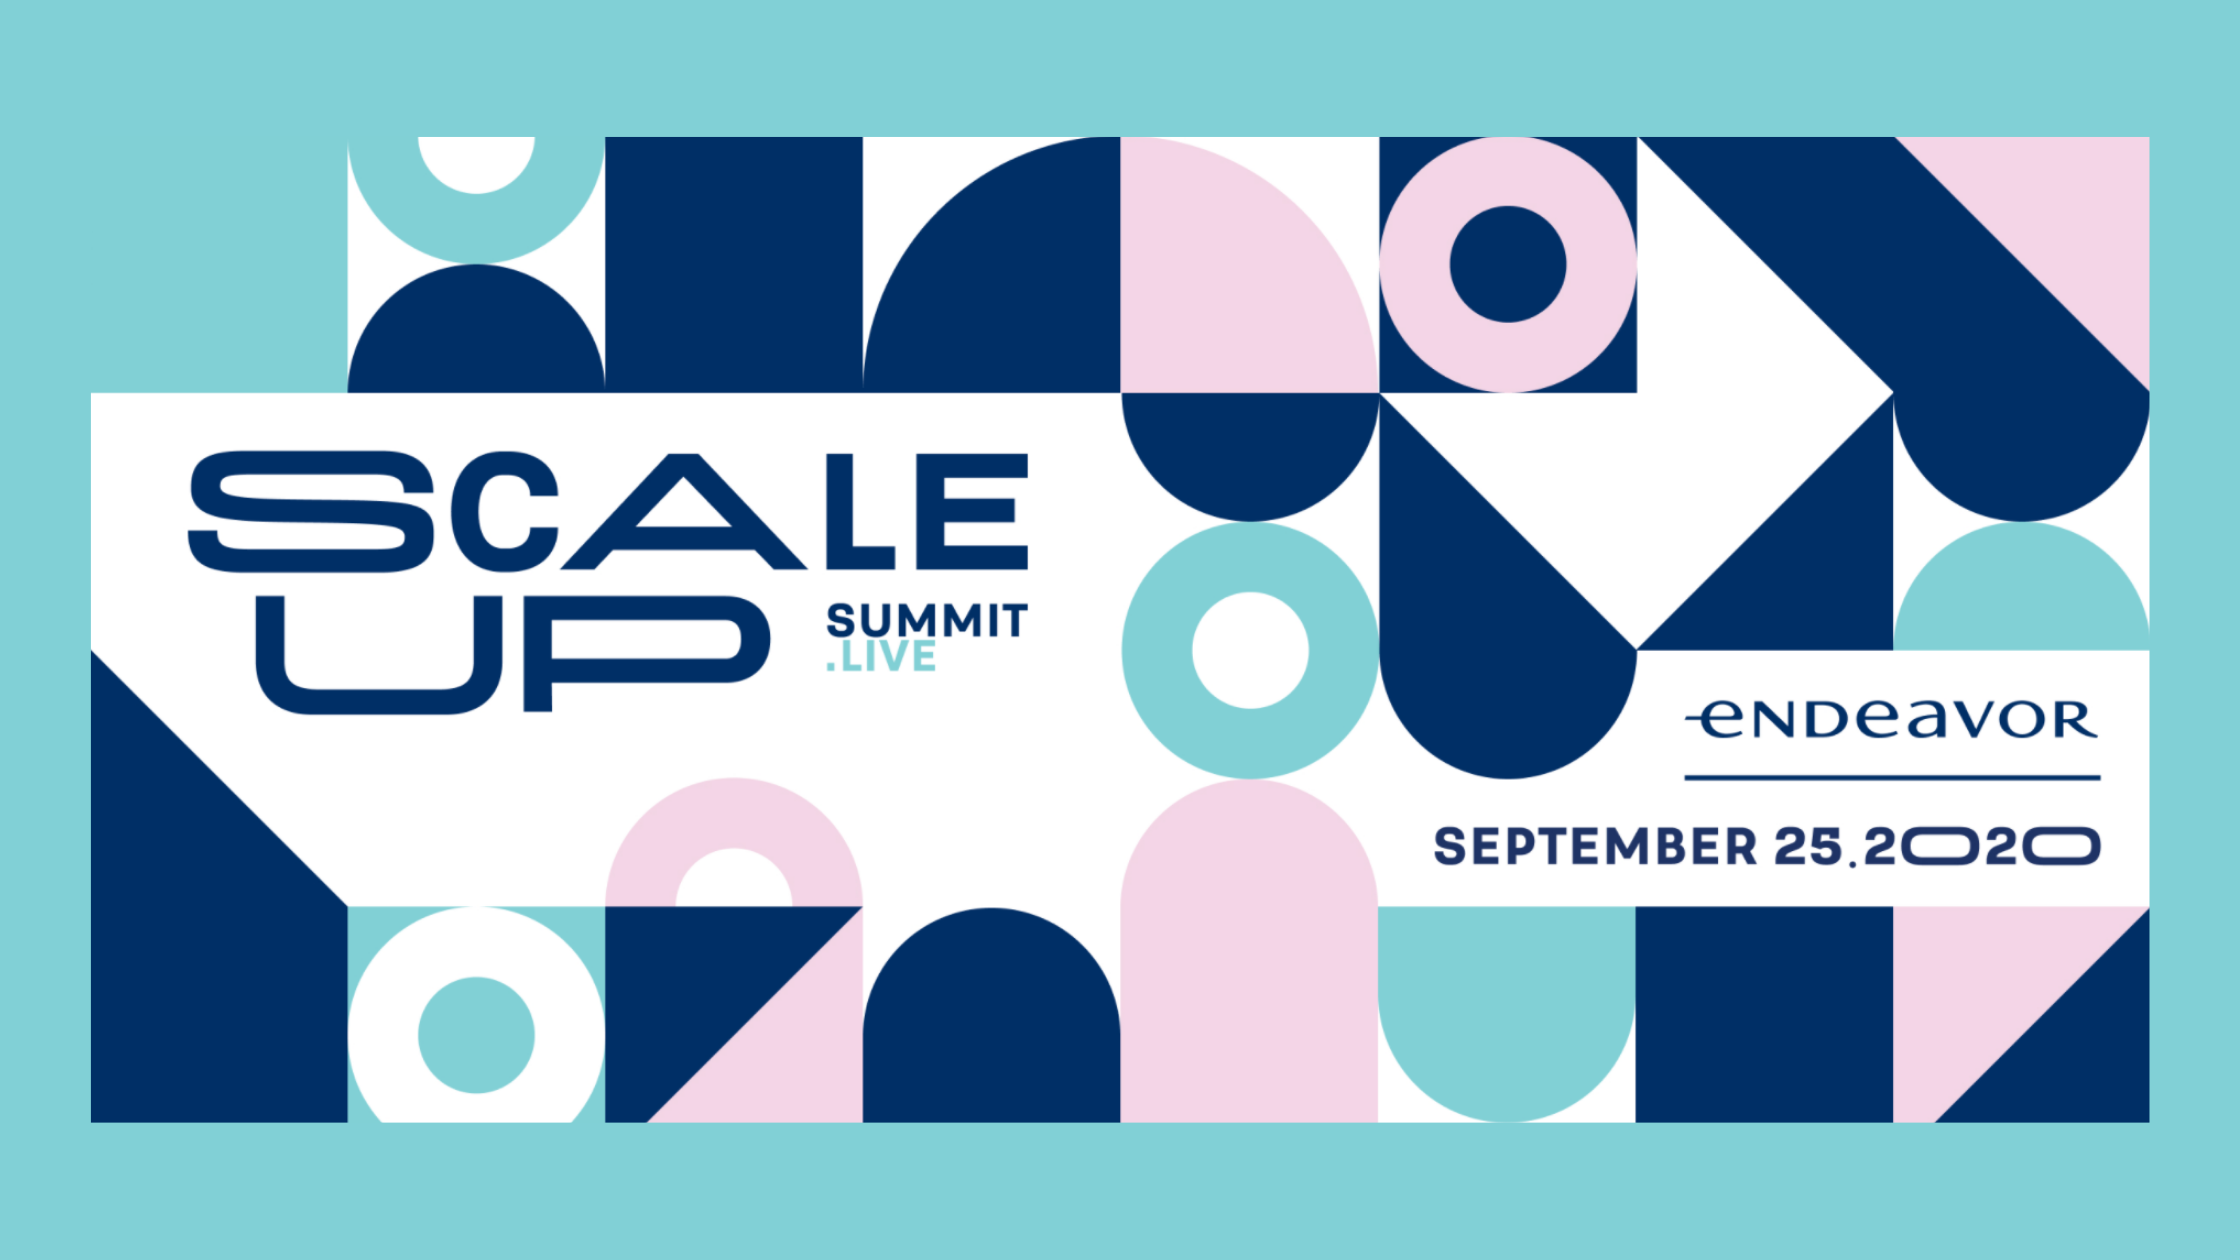 Entrepreneurs, Mentors and Board Members from U.S. and Ireland Gather for First ScaleUp Summit